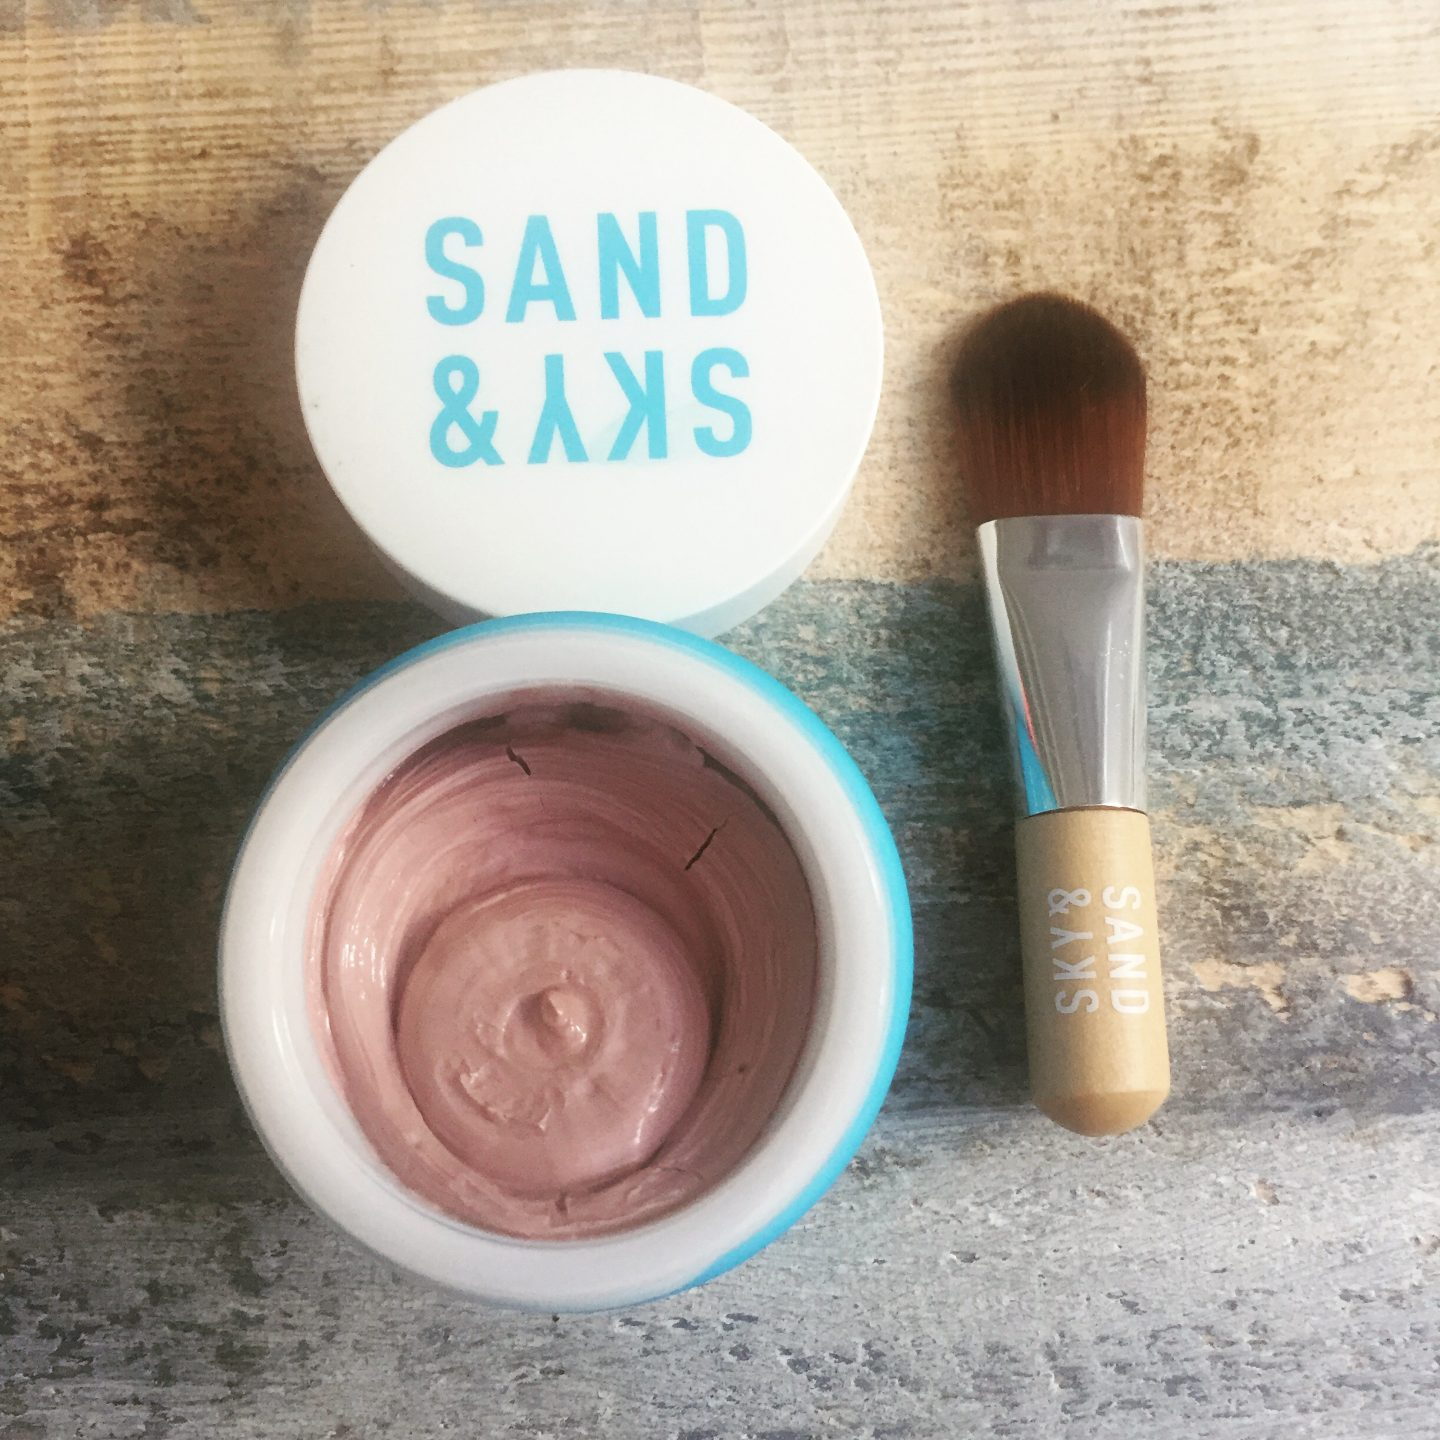 REVIEW | Sand & Sky Pink Clay Mask